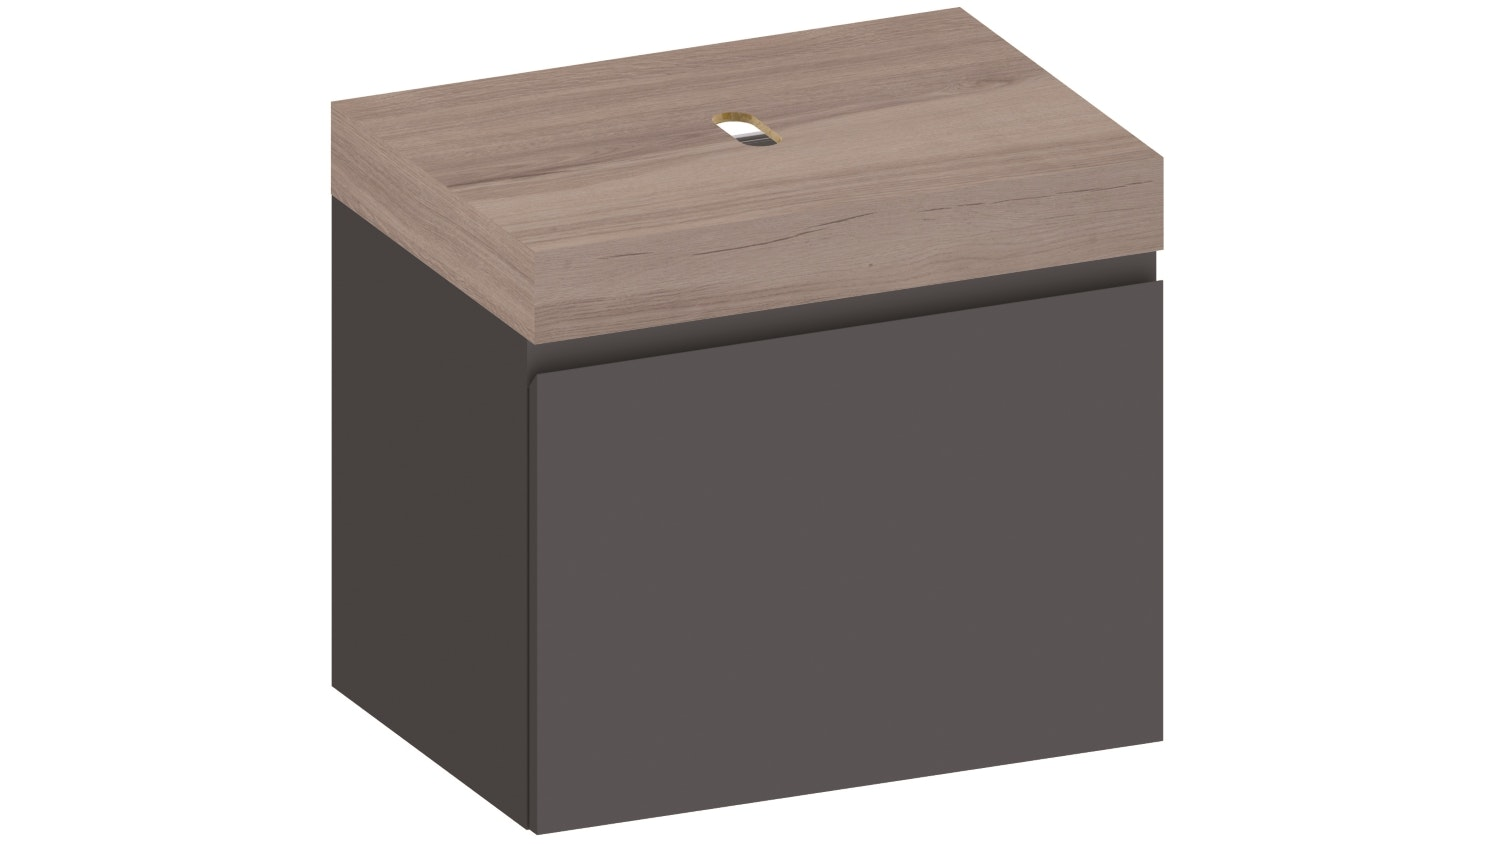 Kokoon Elements 700 Wall Mounted Vanity With HPL Rovere Wafer Top - Graphite